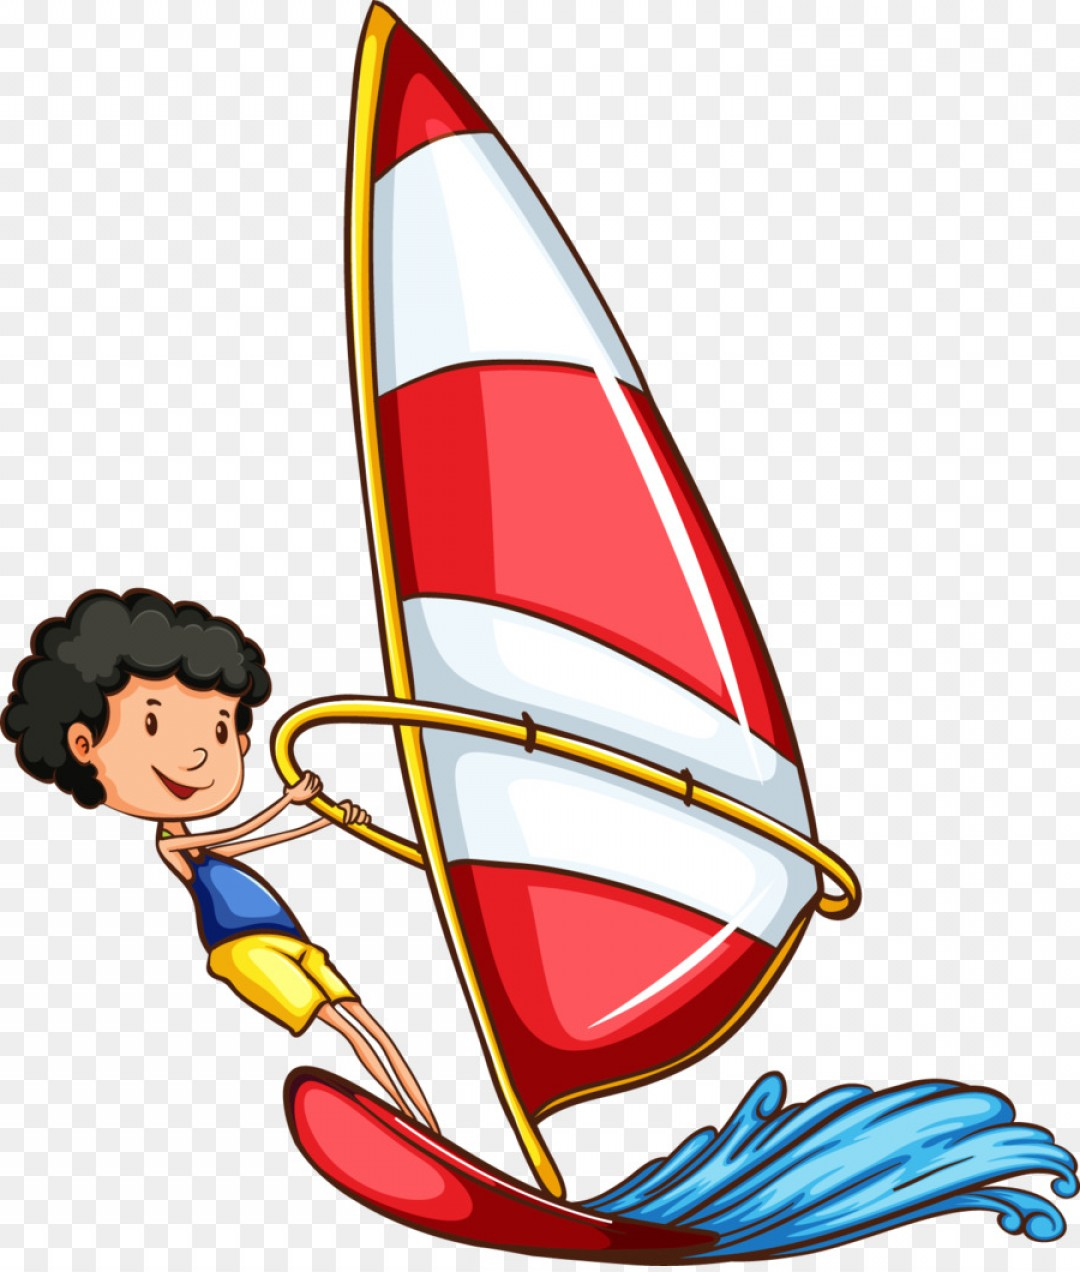 Transparent PNG Vector Skier: Png Sport Water Skiing Clip Art Foreign Student Moveme